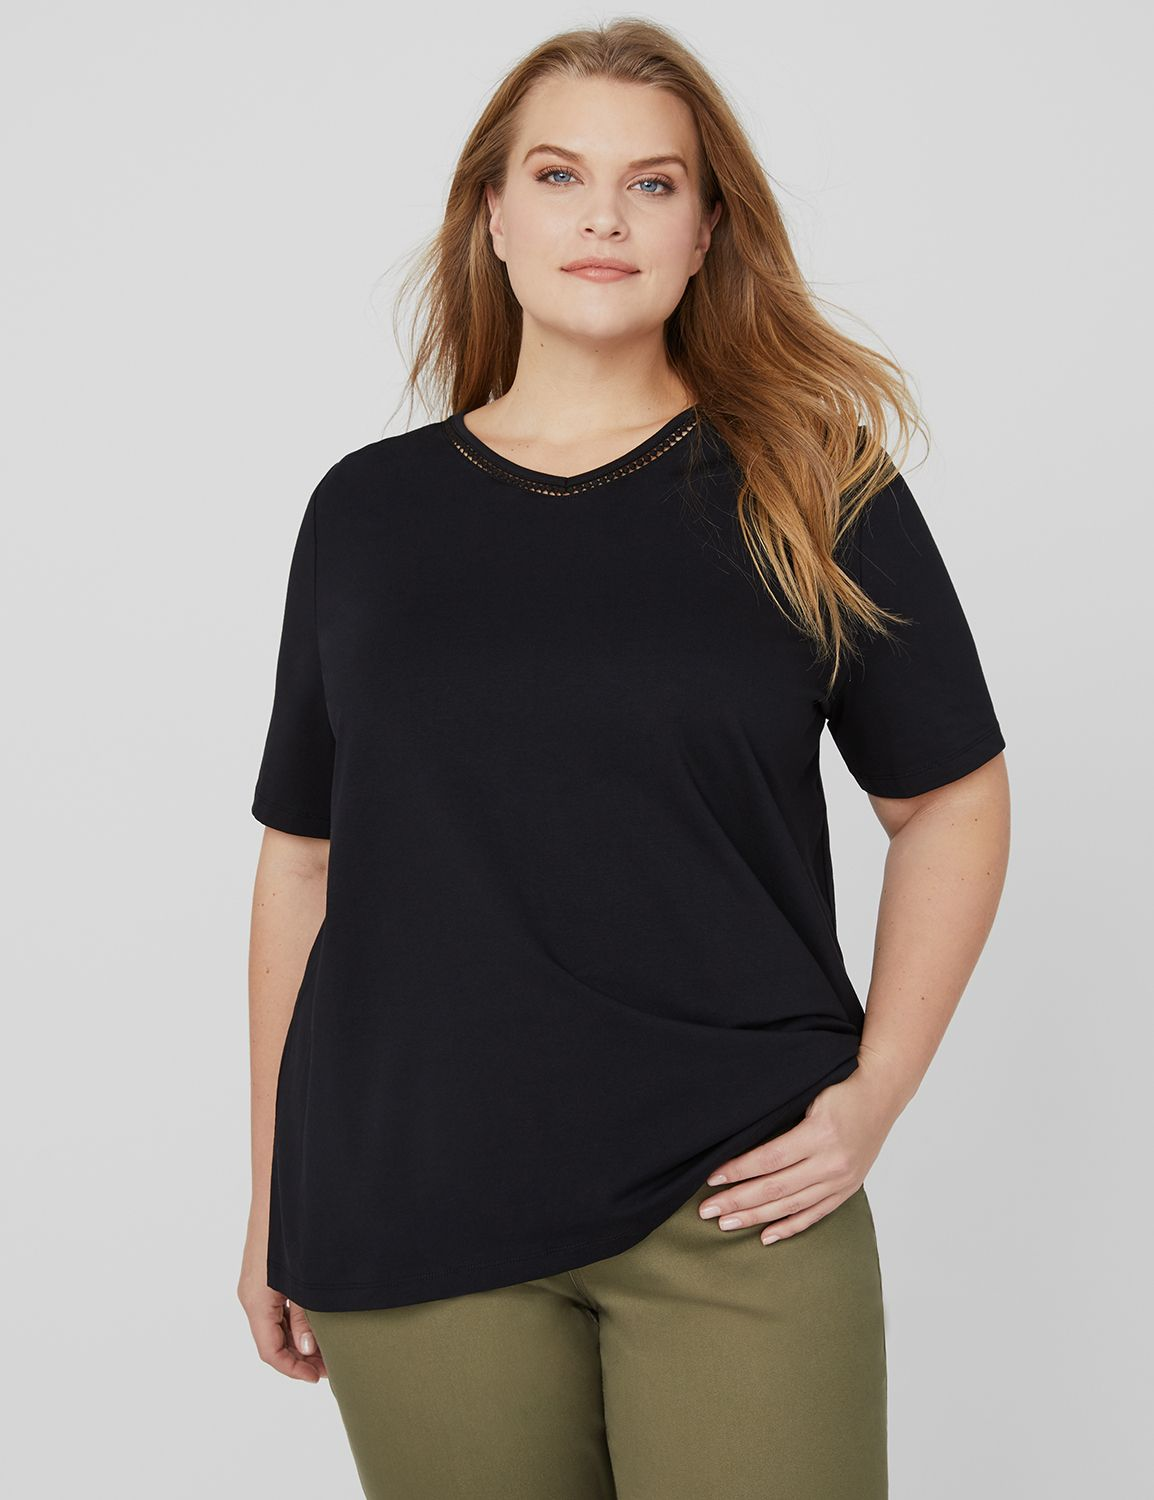 Suprema Lavish Tee 1087747 SS Basic Vneck with trim- S MP-300101134